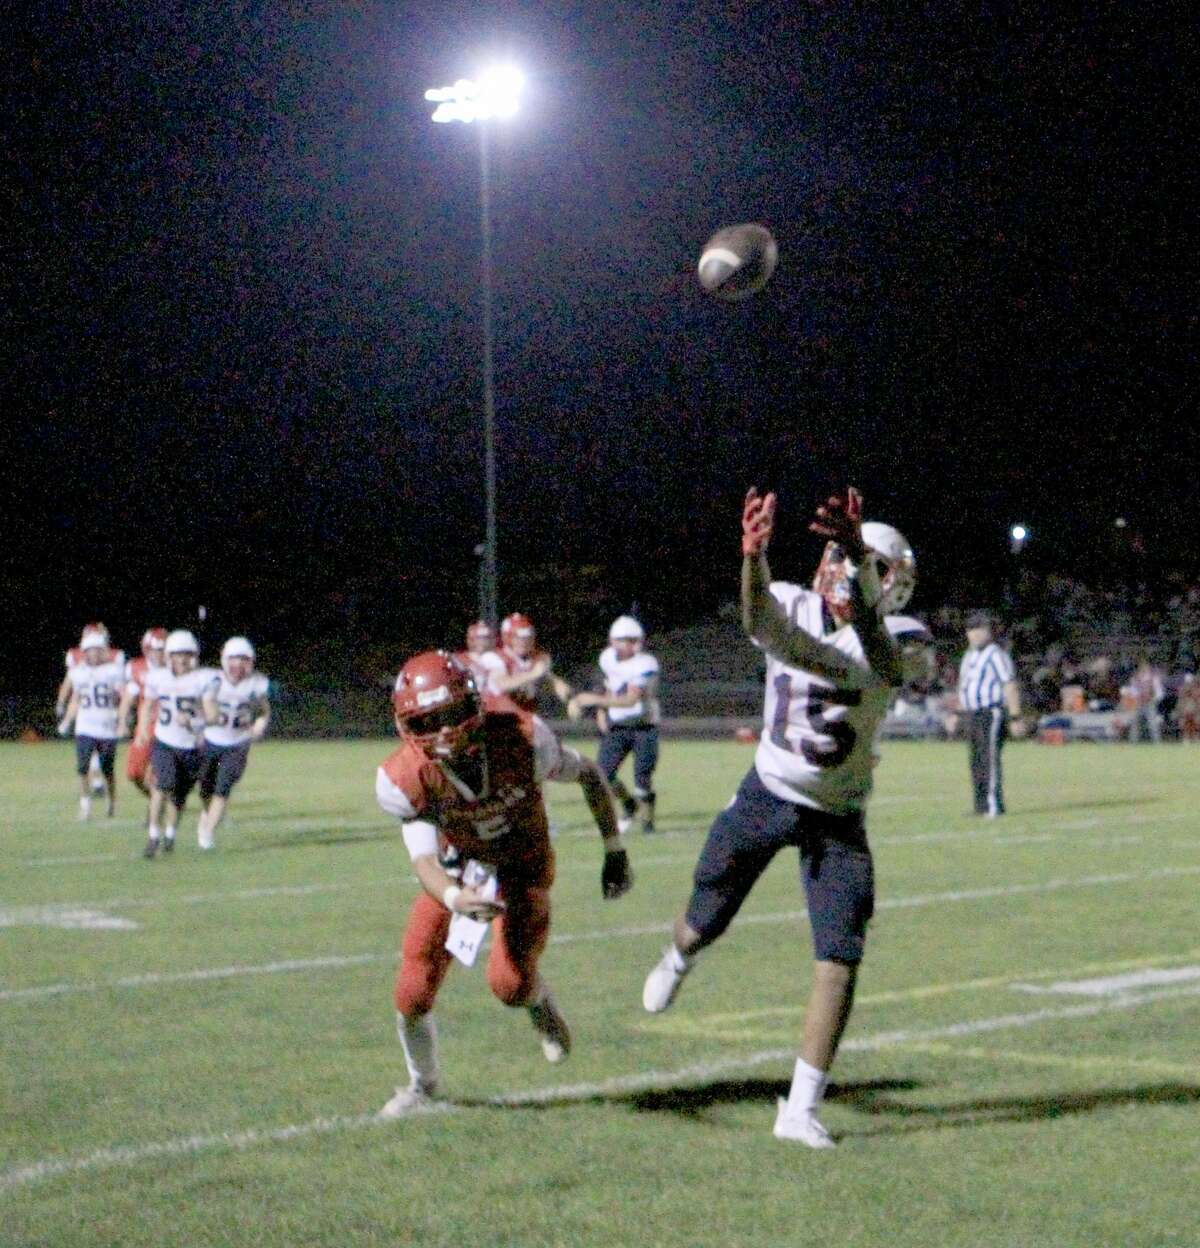 On Friday night, the Big Rapids football team defeated Chippewa Hills 41-8 at Warrior Field.